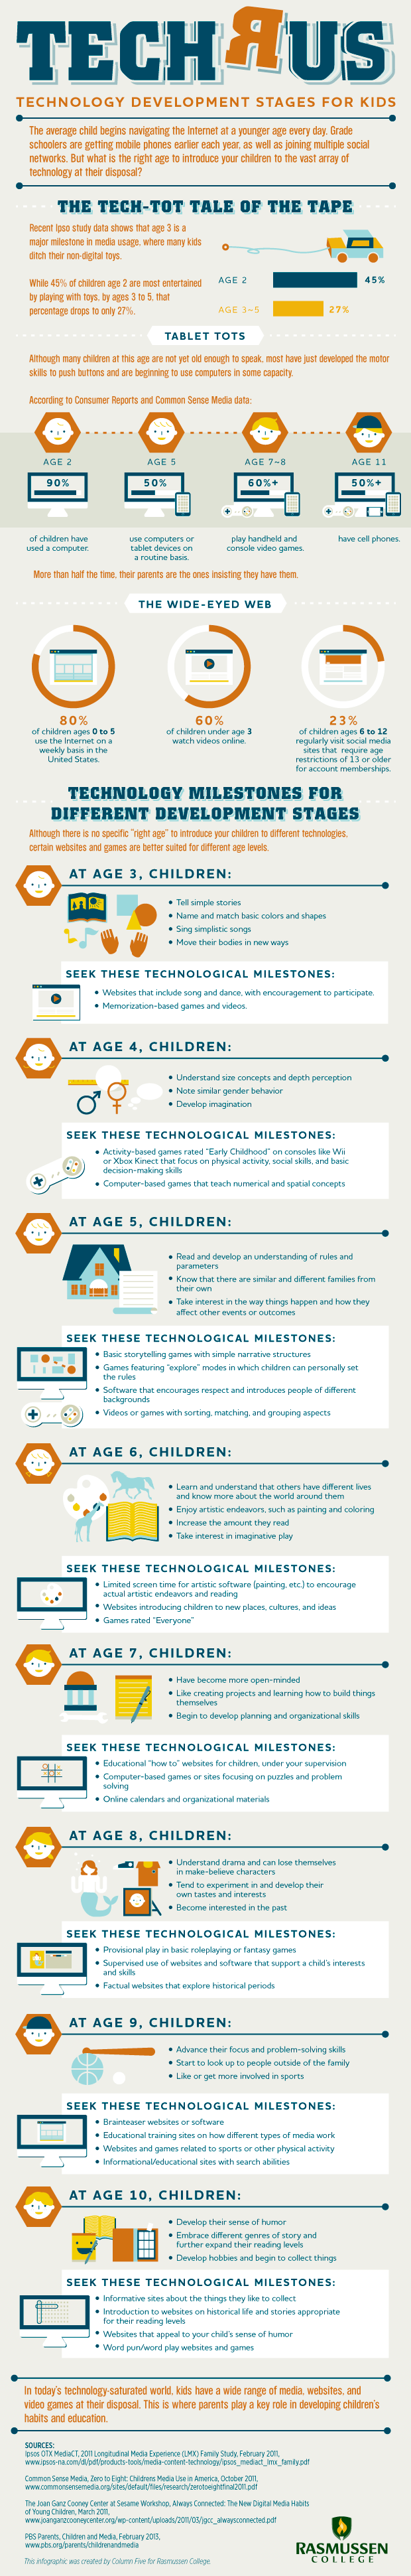 Educational-Technology-Development-Stages-for-Kids-Infographic